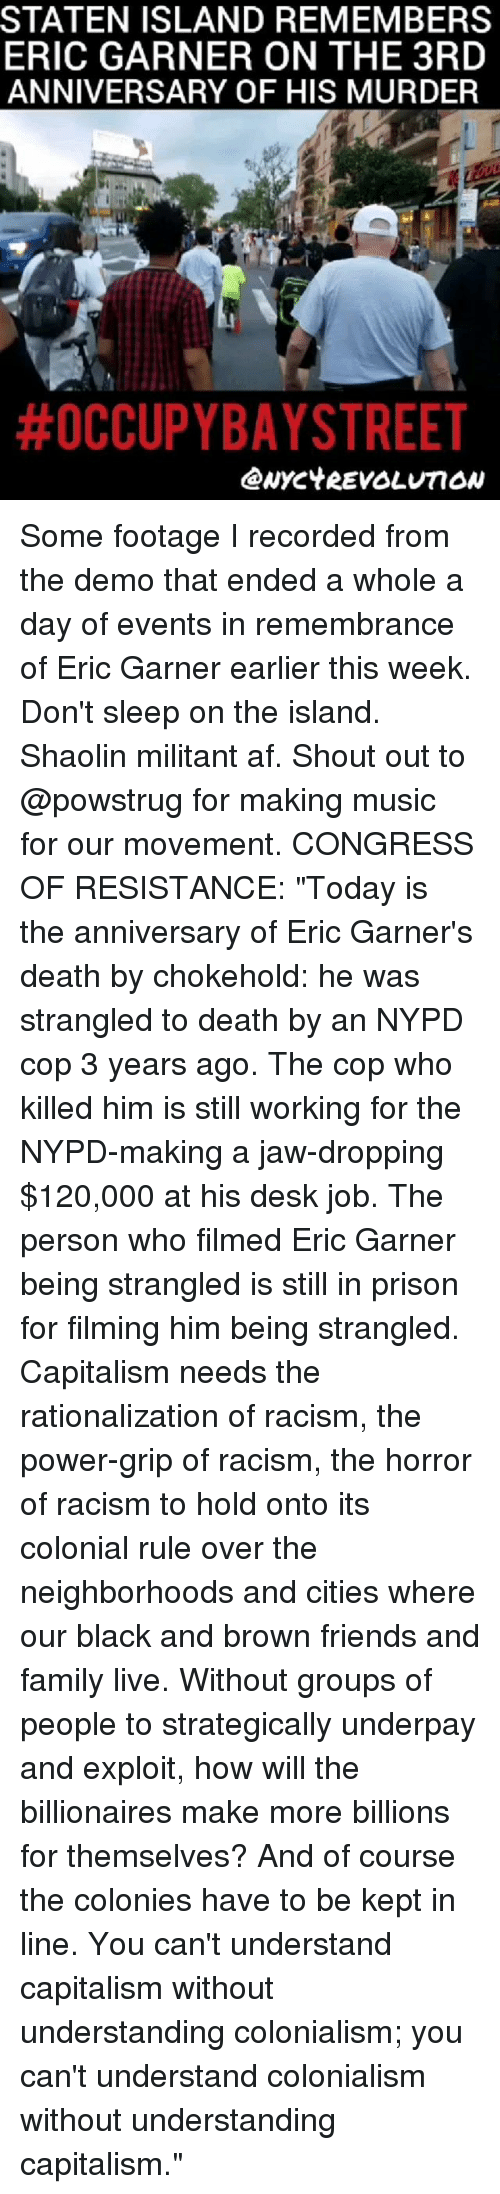 """Af, Family, and Friends: STATEN ISLAND REMEMBERS  ERIC GARNER ON THE 3RD  ANNIVERSARY OF HIS MURDER  Some footage I recorded from the demo that ended a whole a day of events in remembrance of Eric Garner earlier this week. Don't sleep on the island. Shaolin militant af. Shout out to @powstrug for making music for our movement. CONGRESS OF RESISTANCE: """"Today is the anniversary of Eric Garner's death by chokehold: he was strangled to death by an NYPD cop 3 years ago. The cop who killed him is still working for the NYPD-making a jaw-dropping $120,000 at his desk job. The person who filmed Eric Garner being strangled is still in prison for filming him being strangled. Capitalism needs the rationalization of racism, the power-grip of racism, the horror of racism to hold onto its colonial rule over the neighborhoods and cities where our black and brown friends and family live. Without groups of people to strategically underpay and exploit, how will the billionaires make more billions for themselves? And of course the colonies have to be kept in line. You can't understand capitalism without understanding colonialism; you can't understand colonialism without understanding capitalism."""""""